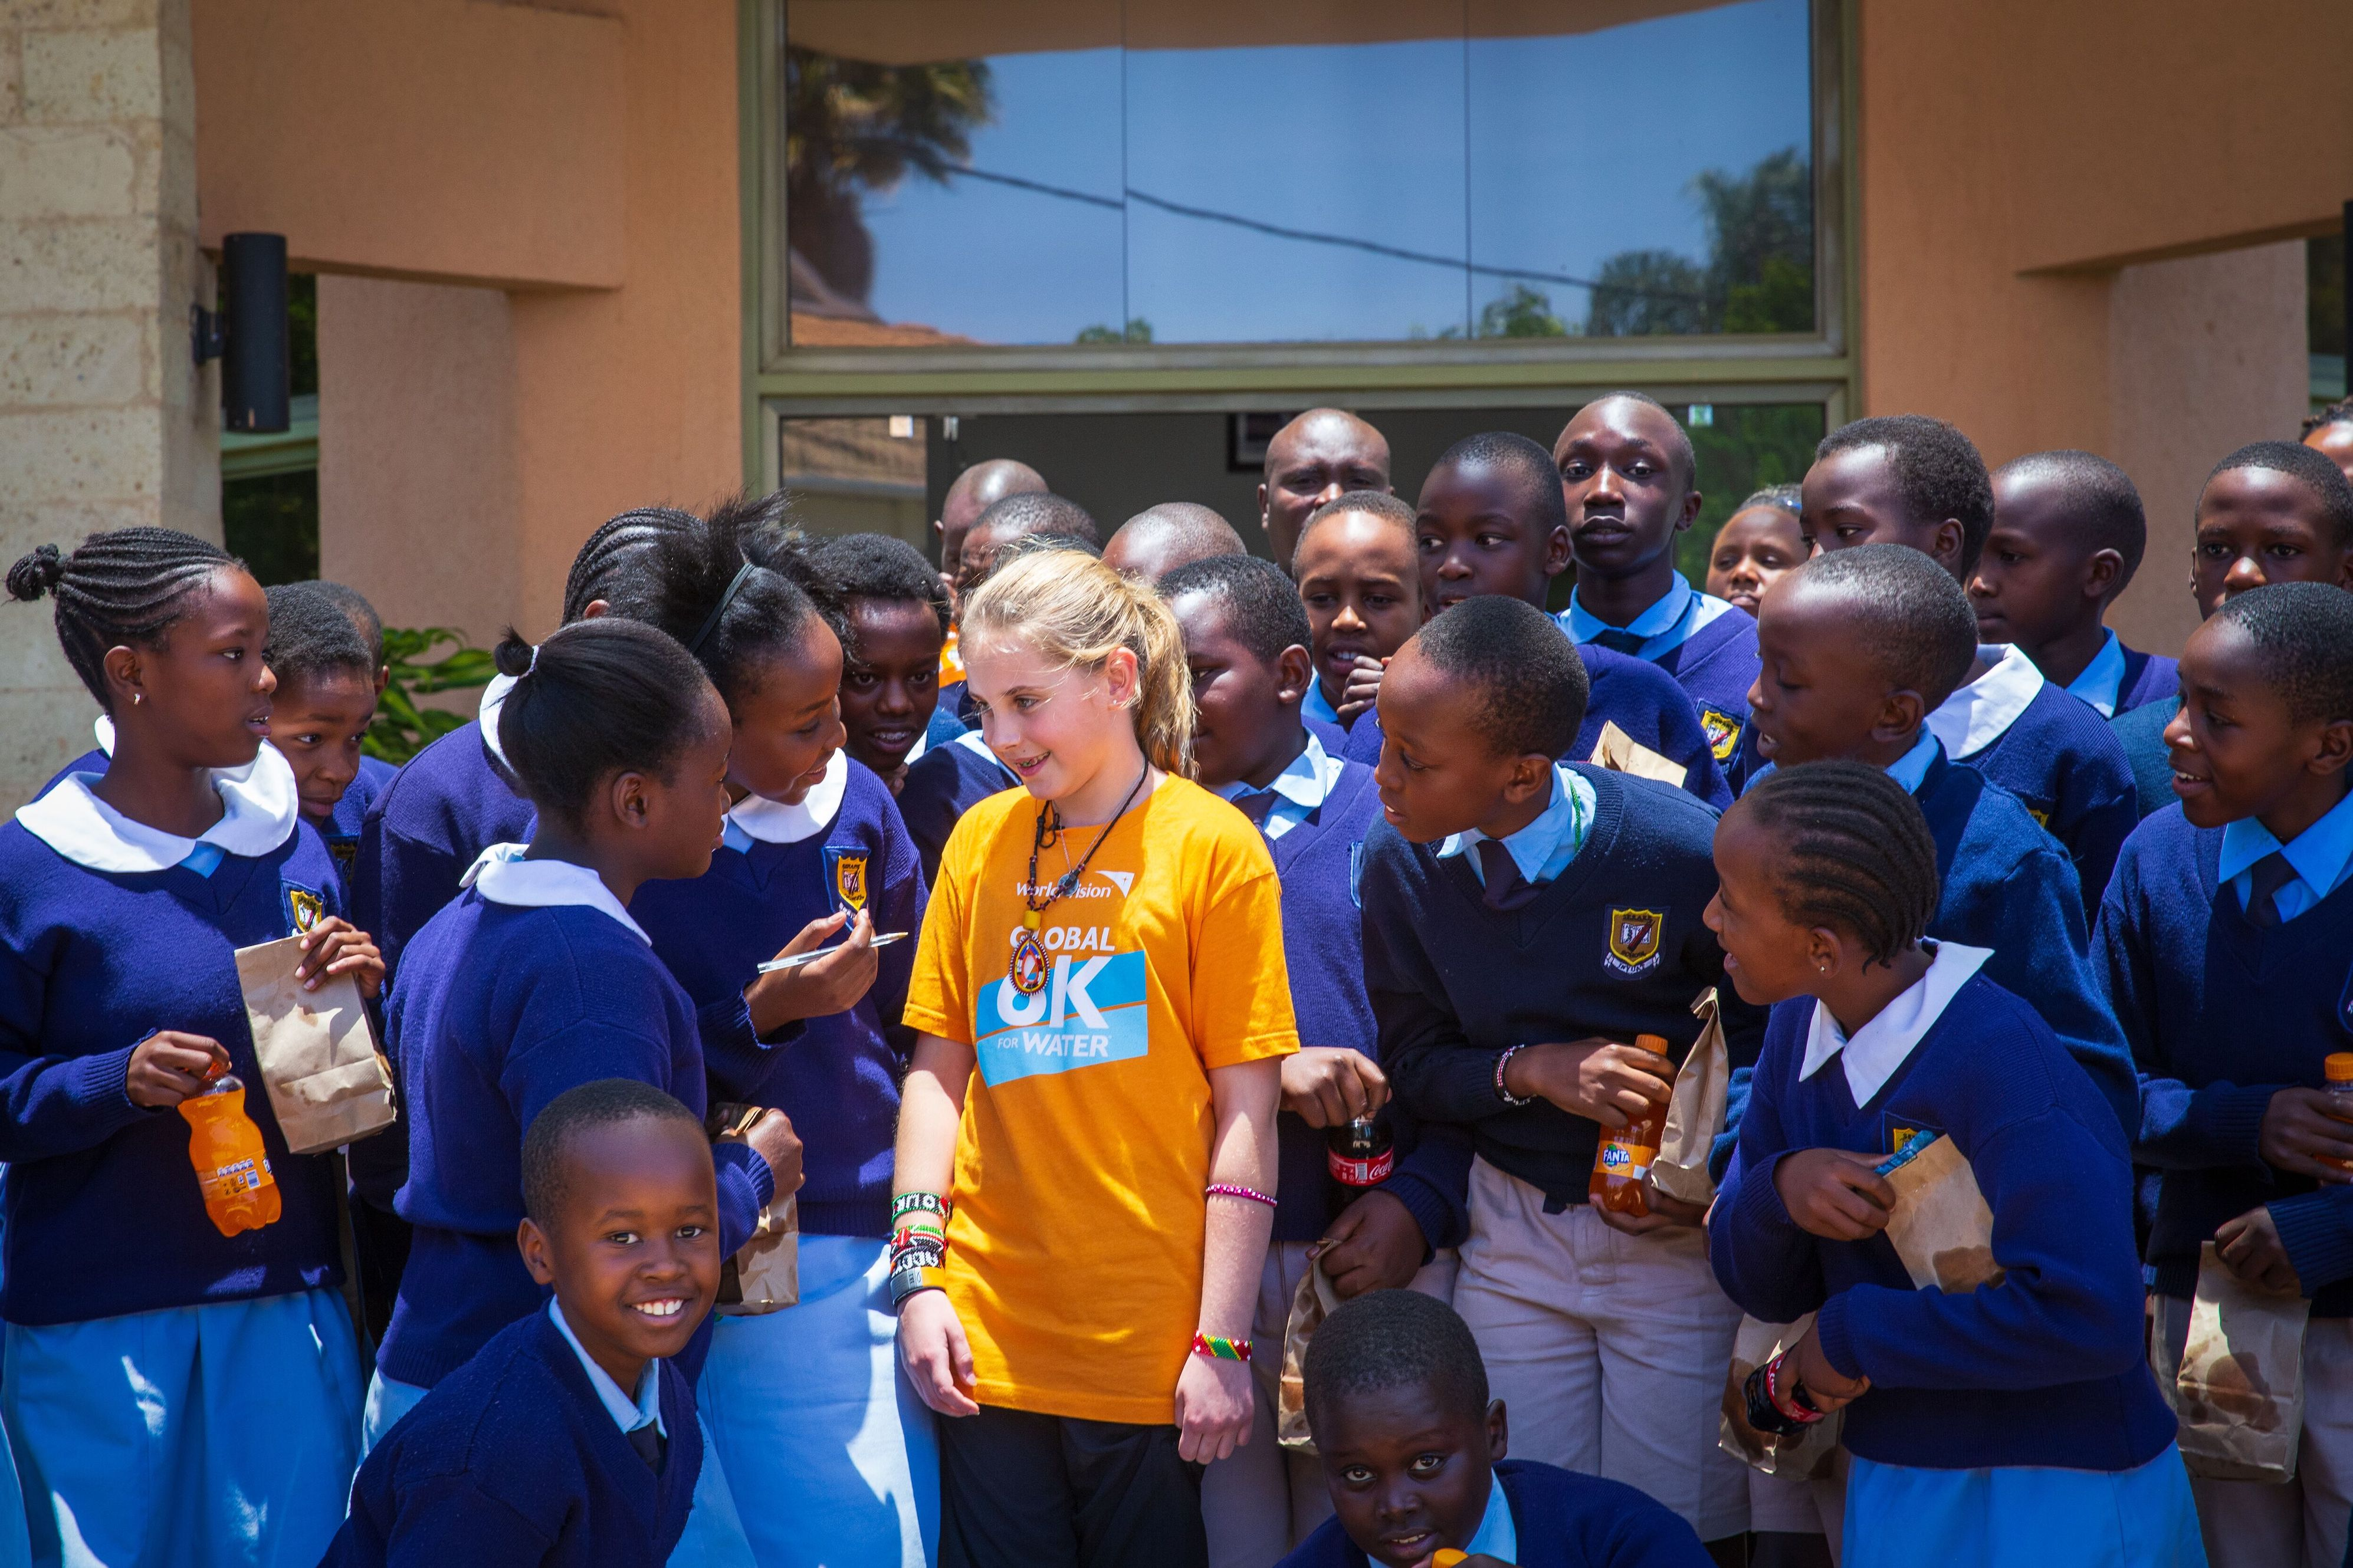 Addyson interacting with pupils from Serare School during an event at World Vision where her charity work inspired many children©World Vision/Photo by Christopher Huber.